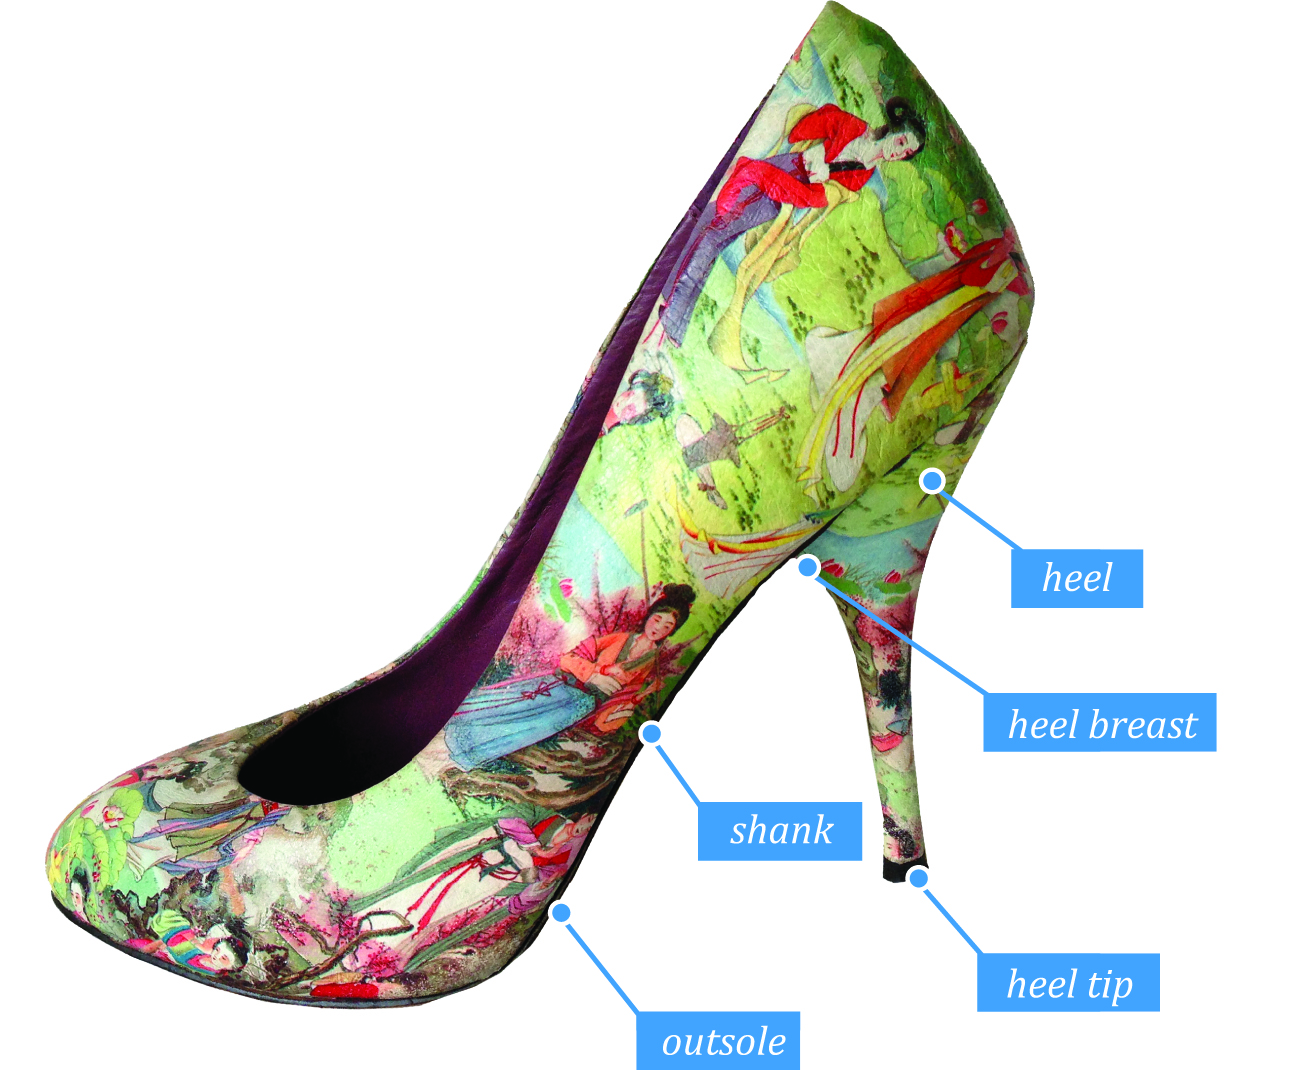 Anatomy of heel